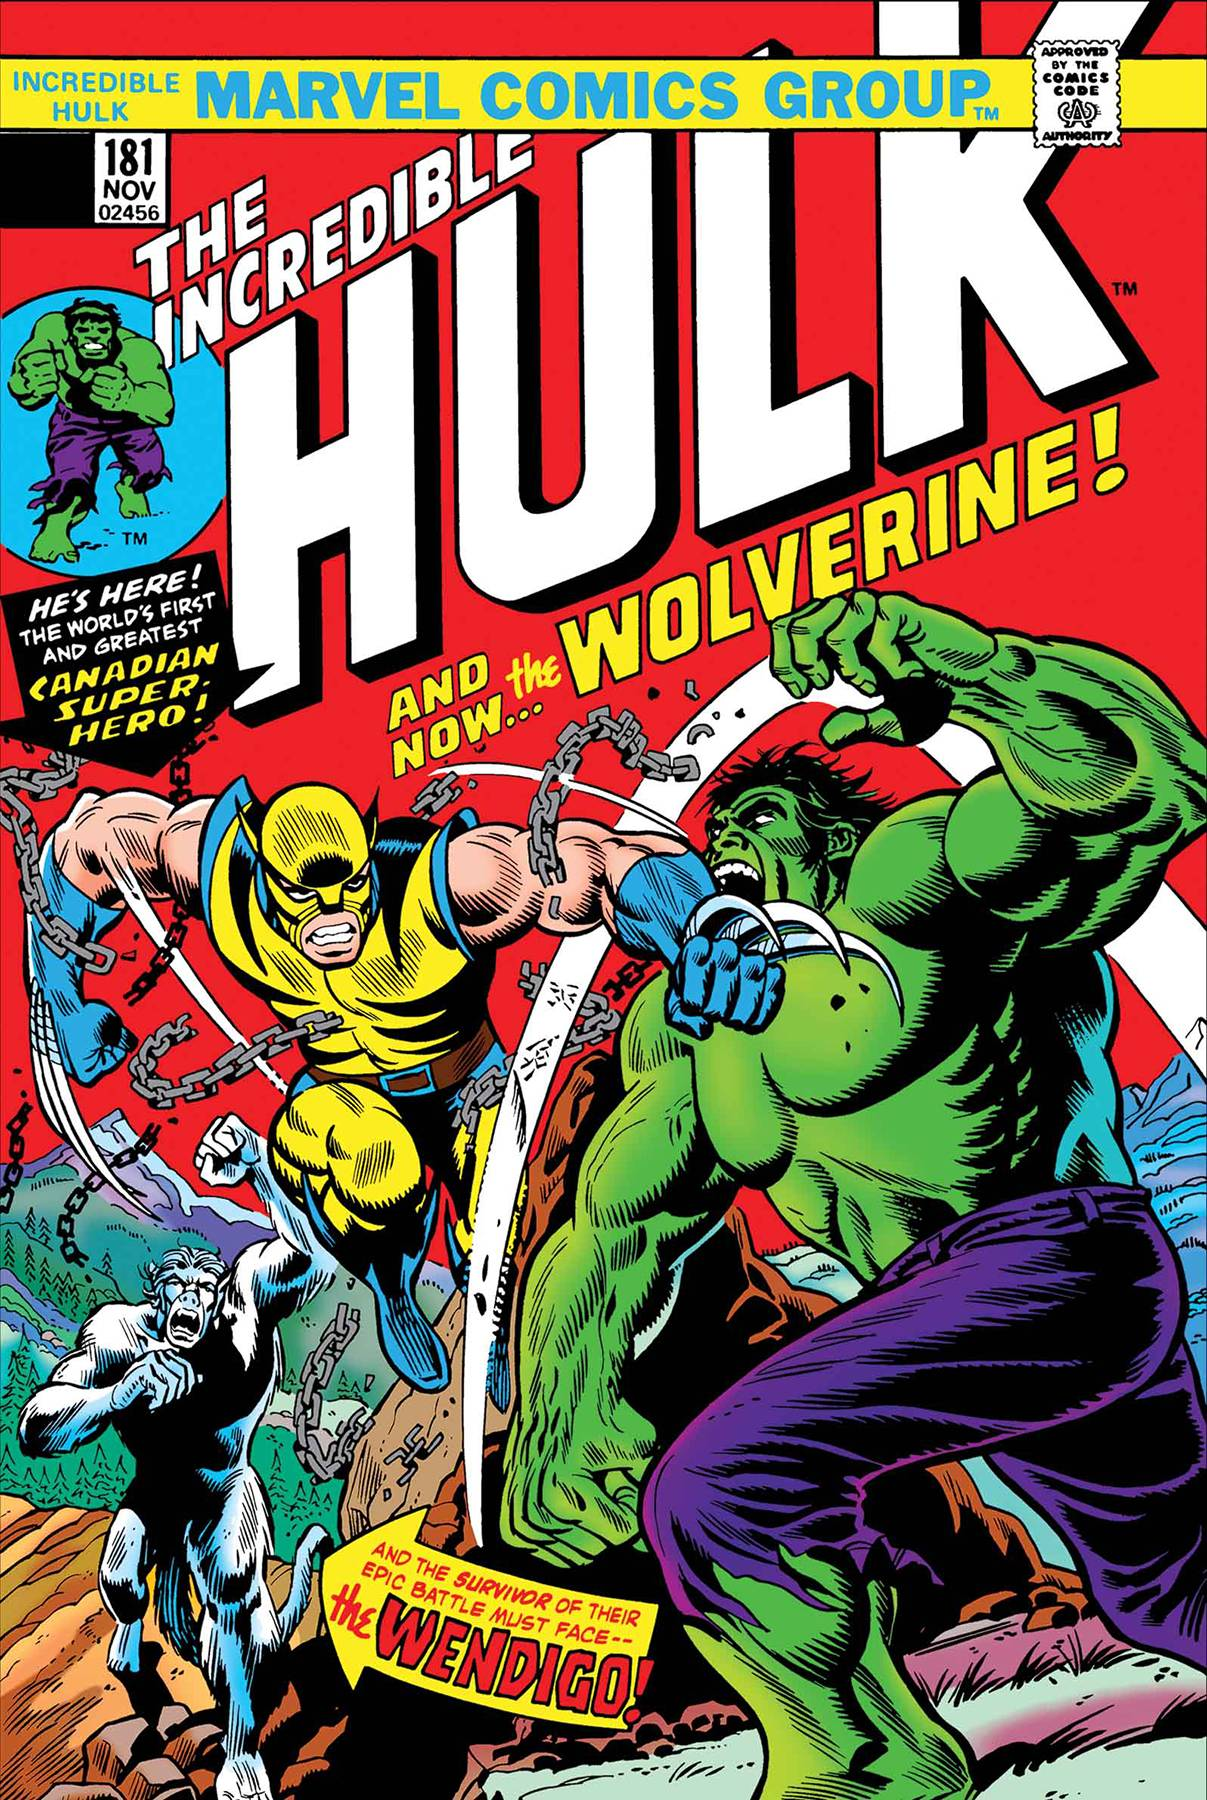 TRUE BELIEVERS WOLVERINE VS HULK#1